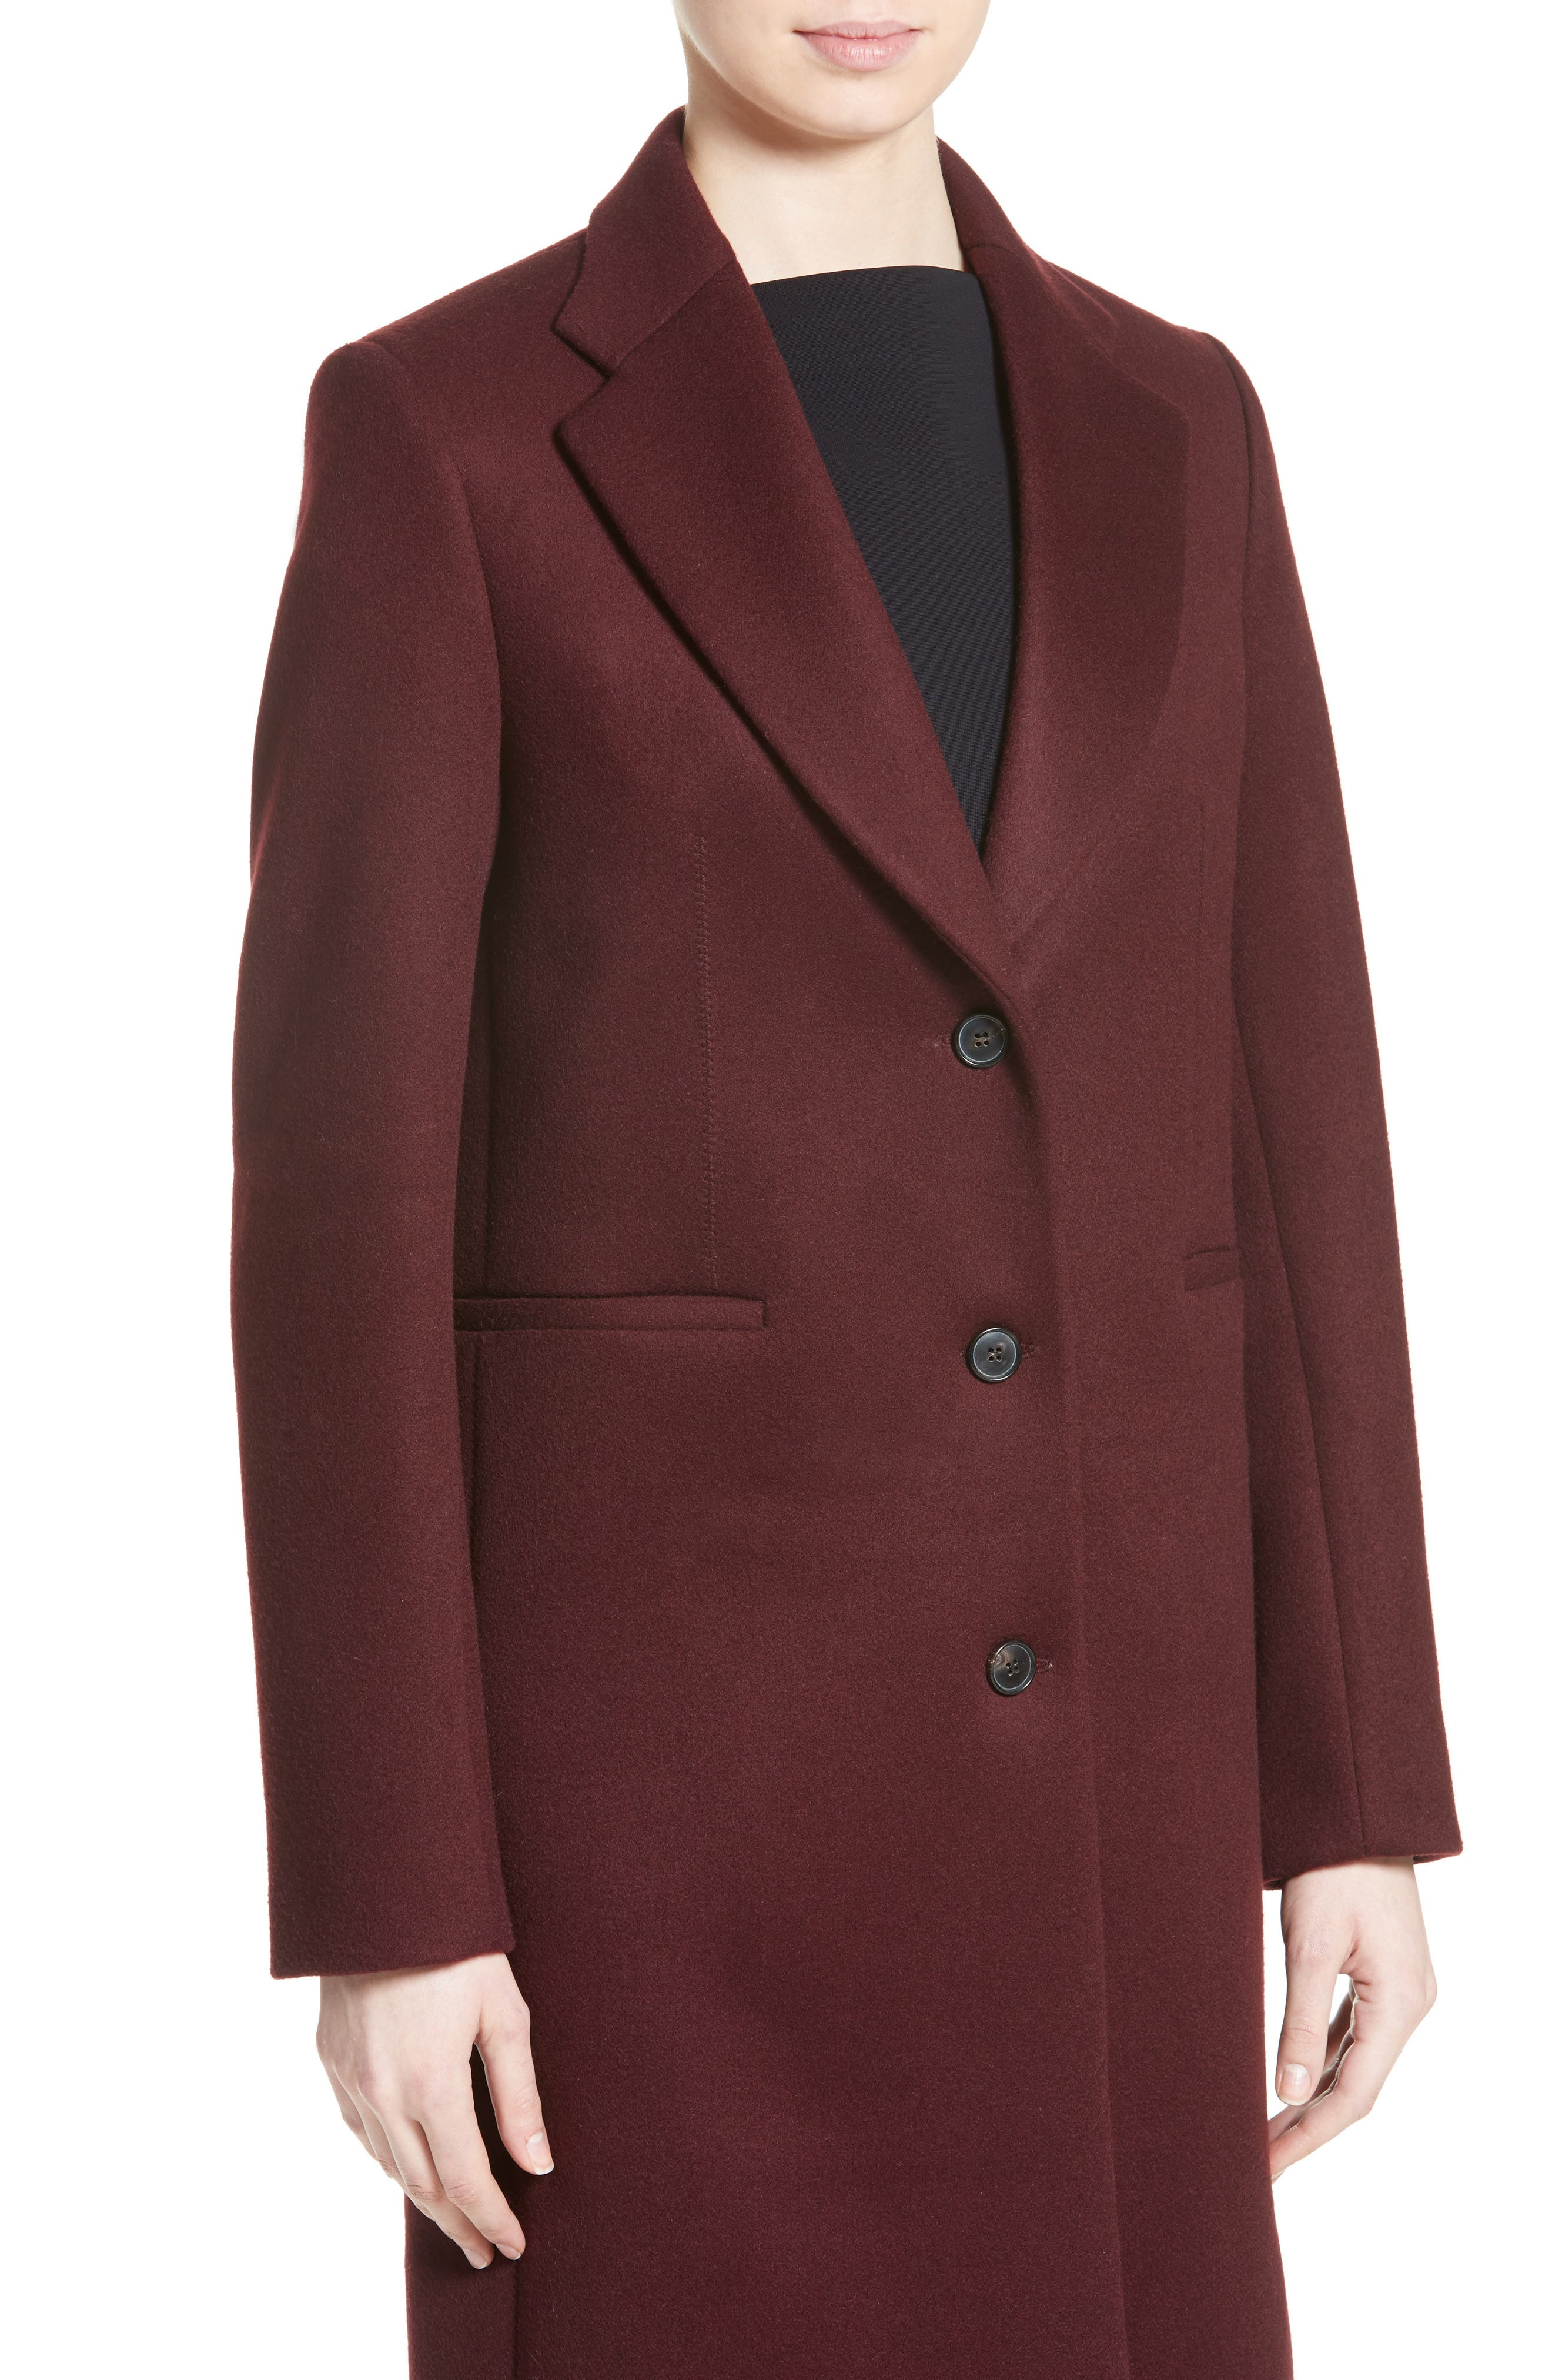 Bonded Felt Coat,                             Alternate thumbnail 4, color,                             Wine-Raspberry